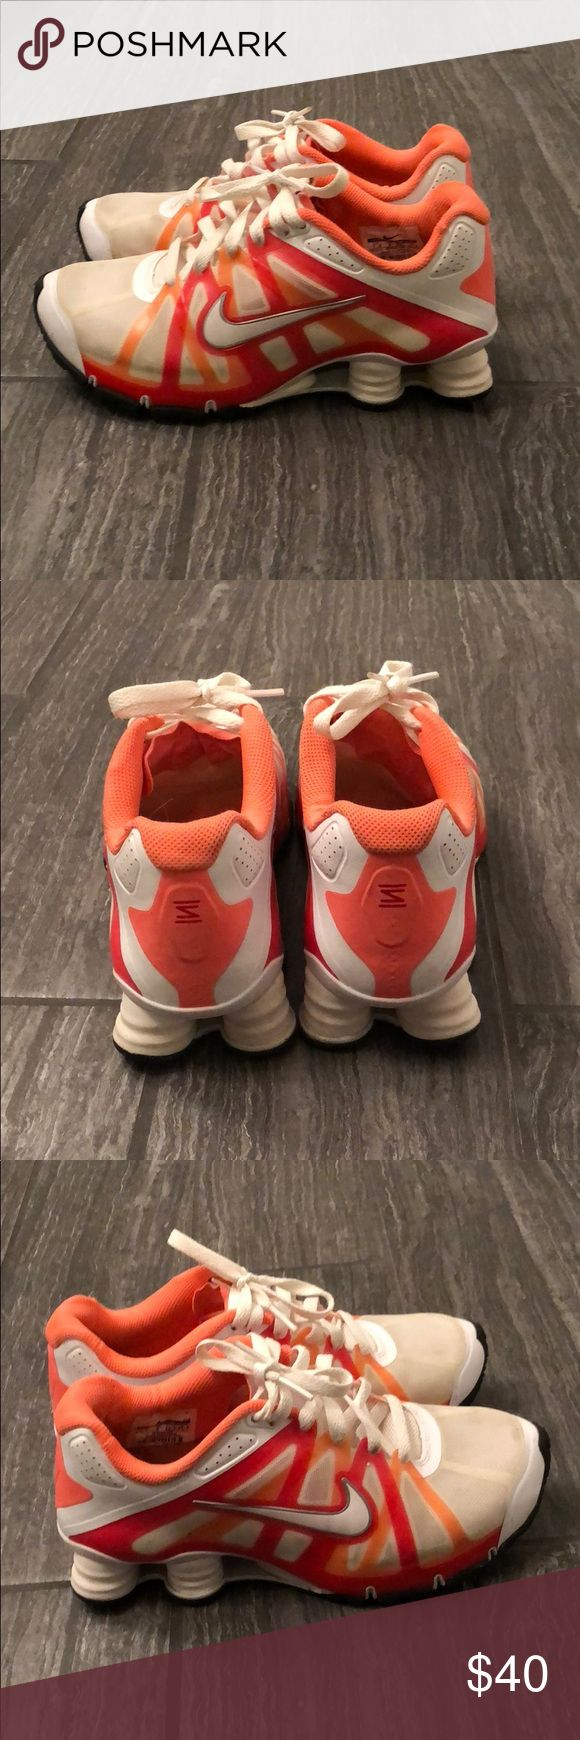 Nike plus, running shoes Only worn a handful of times, size 7.5, orange and red shocks Nike Shoes Sneakers